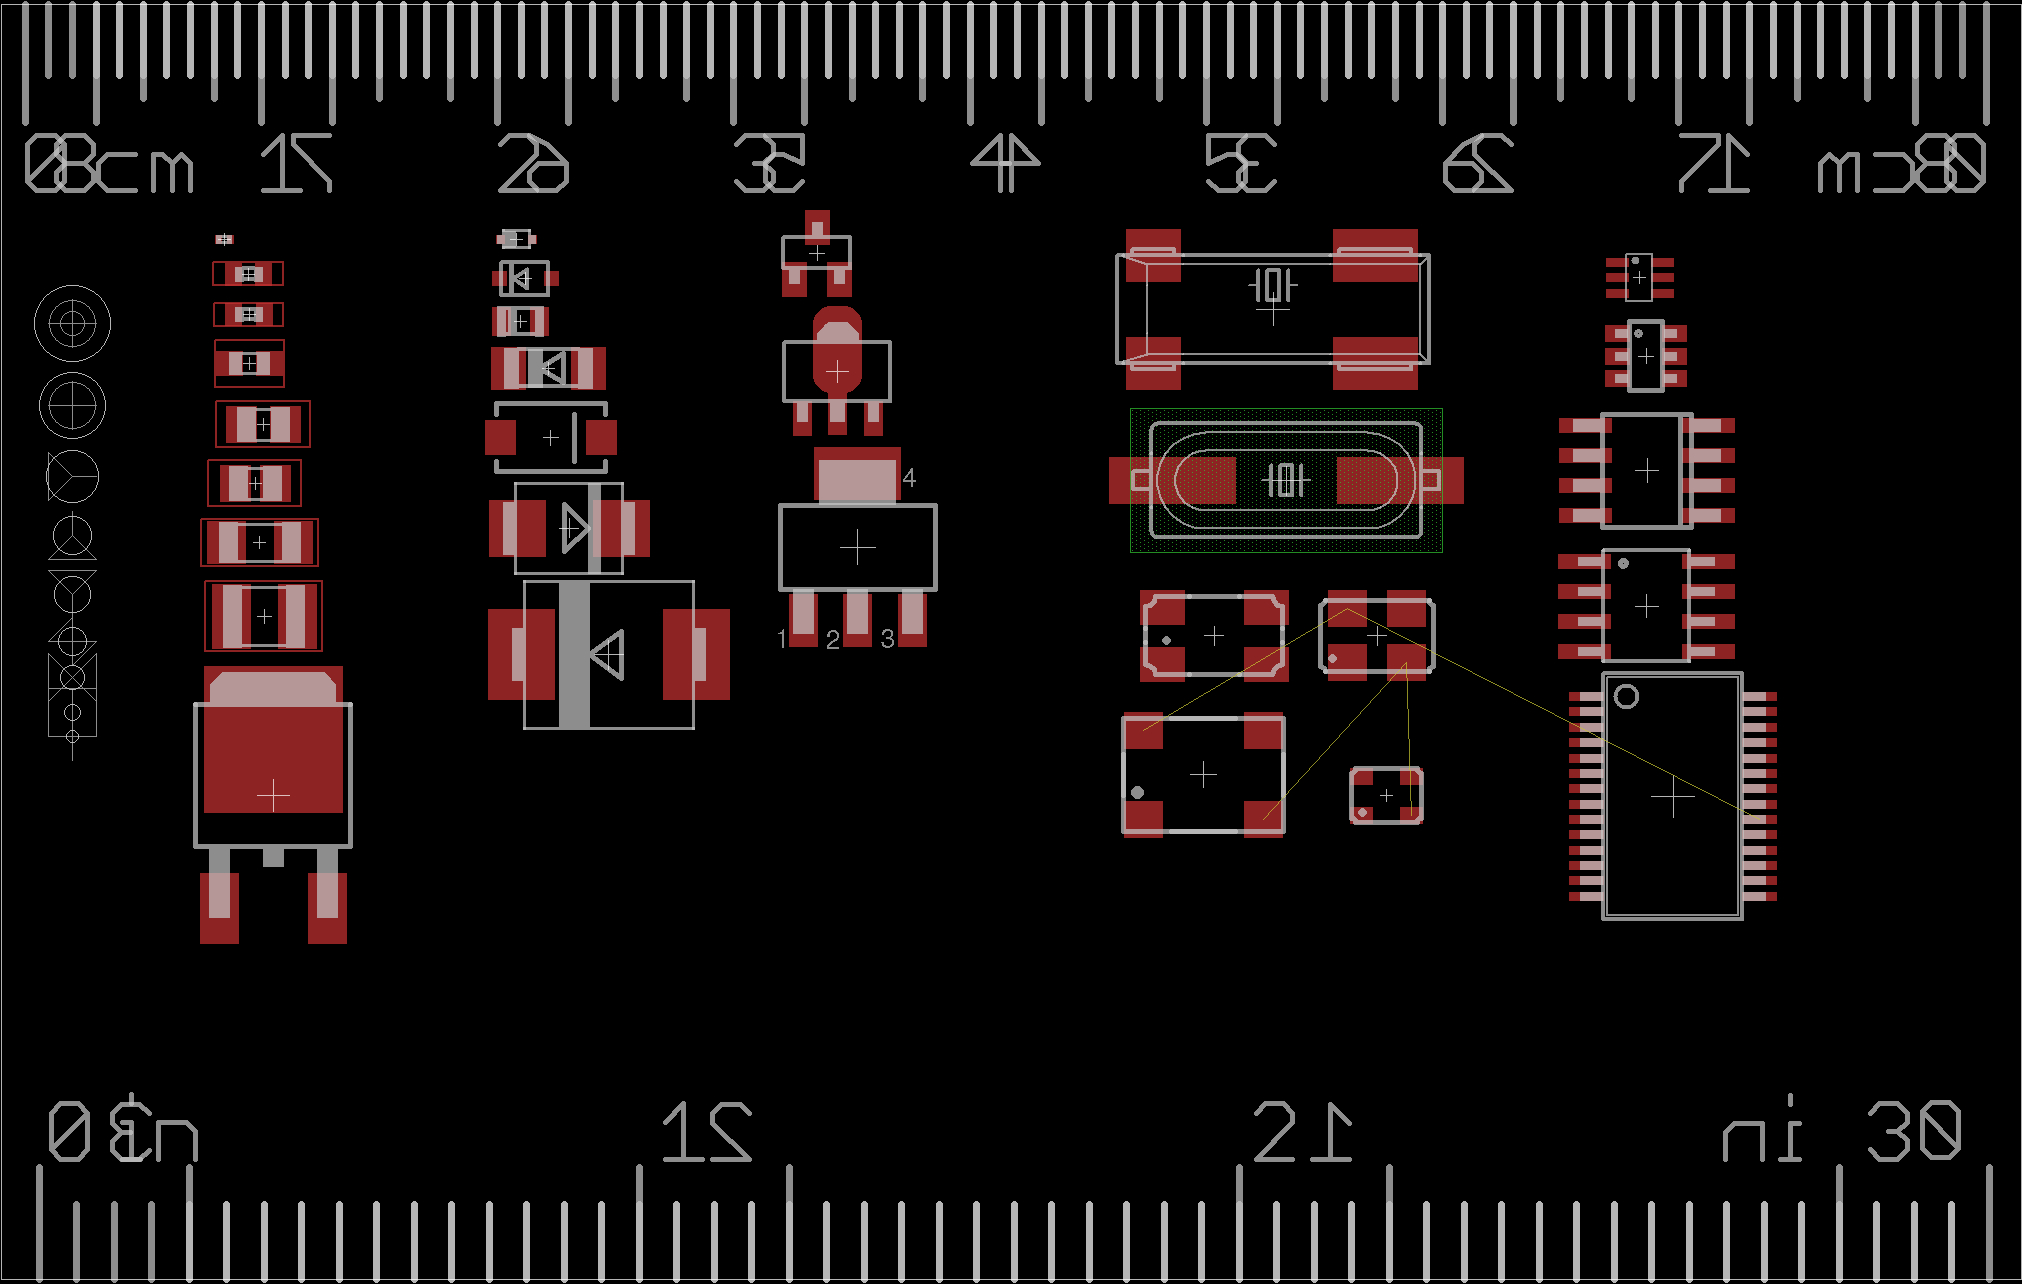 Open Source Pcb Ruler - Black Electronics